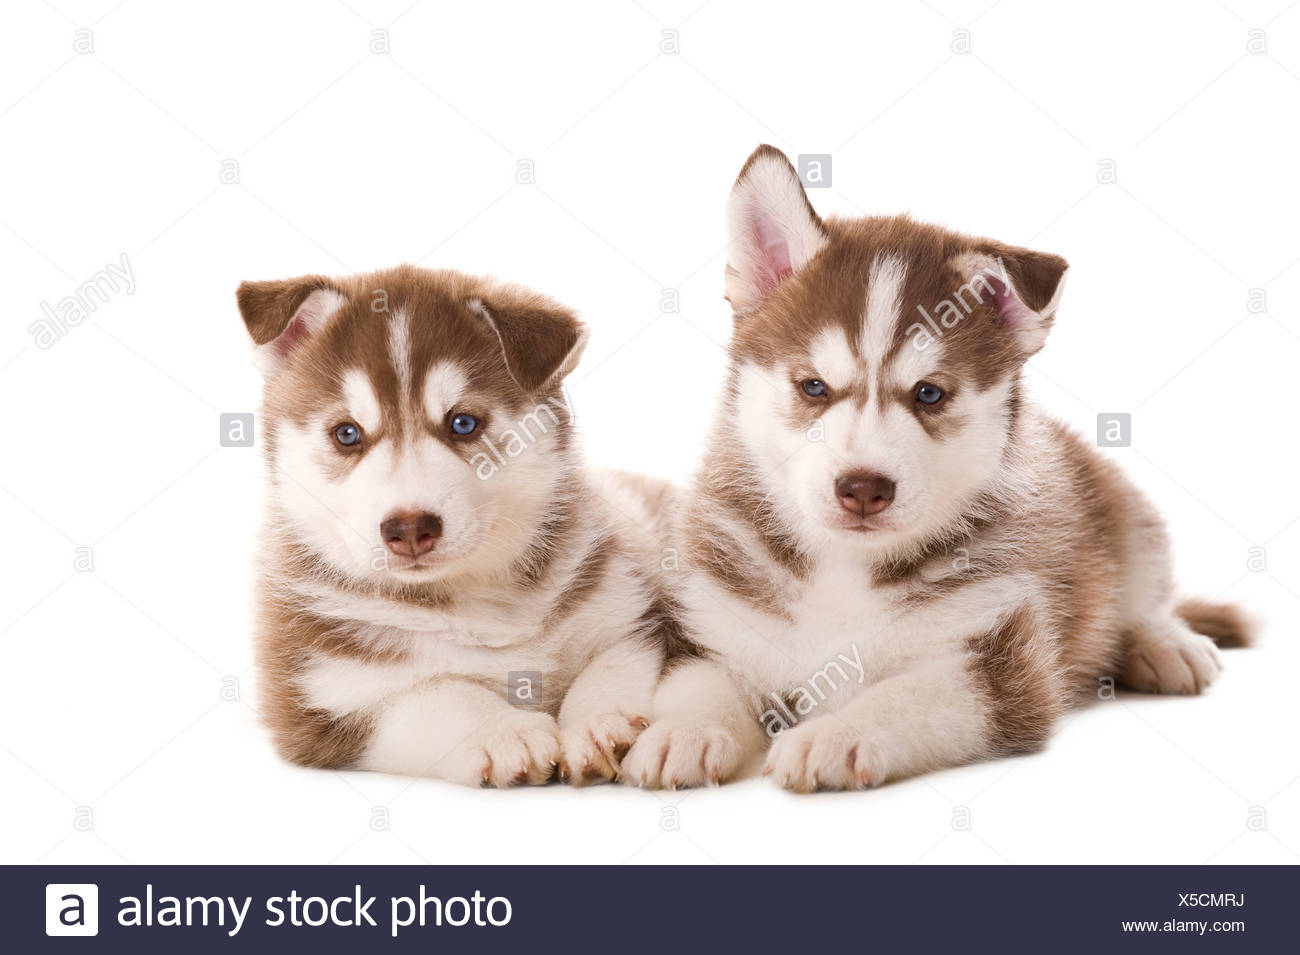 Siberian Husky. Two puppies lying. Studio picture against a white background Stock Photo